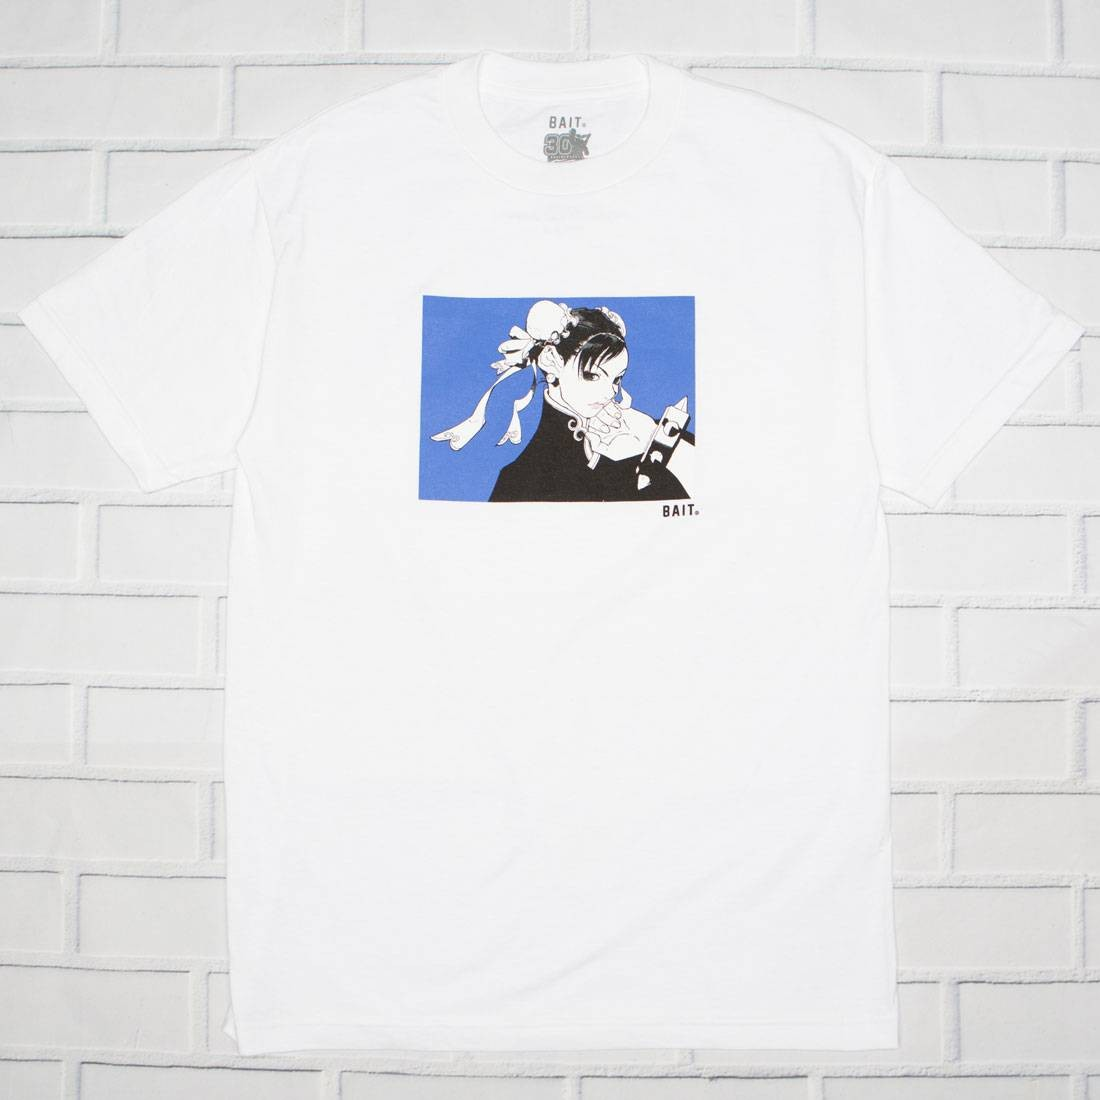 BAIT x Street Fighter Men Chun Li Stamp Tee (white)